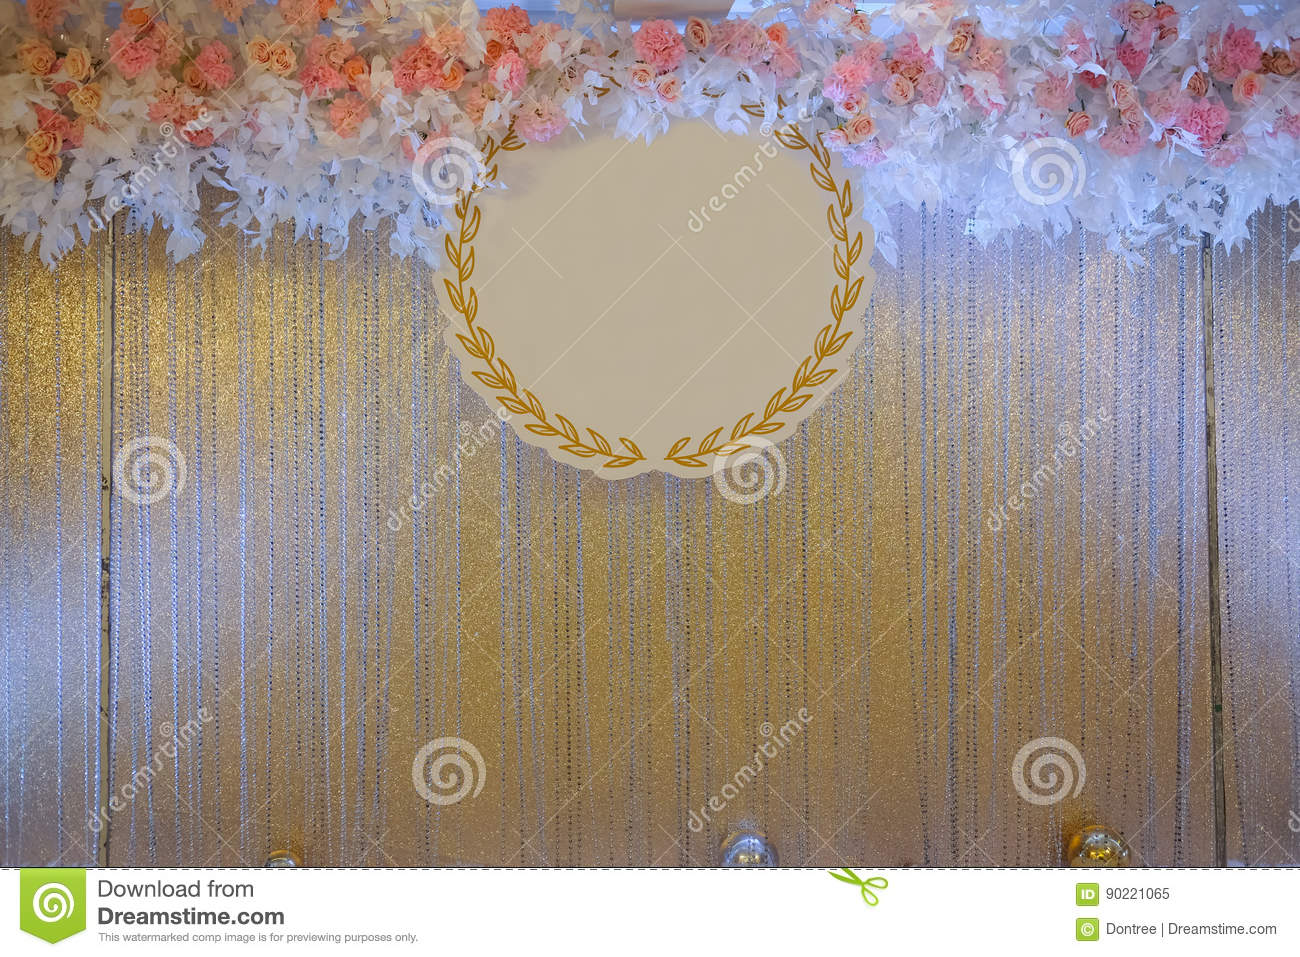 Graceful Flower Wall Backdrop 10x6.5ft Polyester Elegant Yellow Orange Flowers Tracery Wall Background Wedding Ceremony Photo Booth Floral Wedding Stage Bridal Shower Party Banner Studio Props